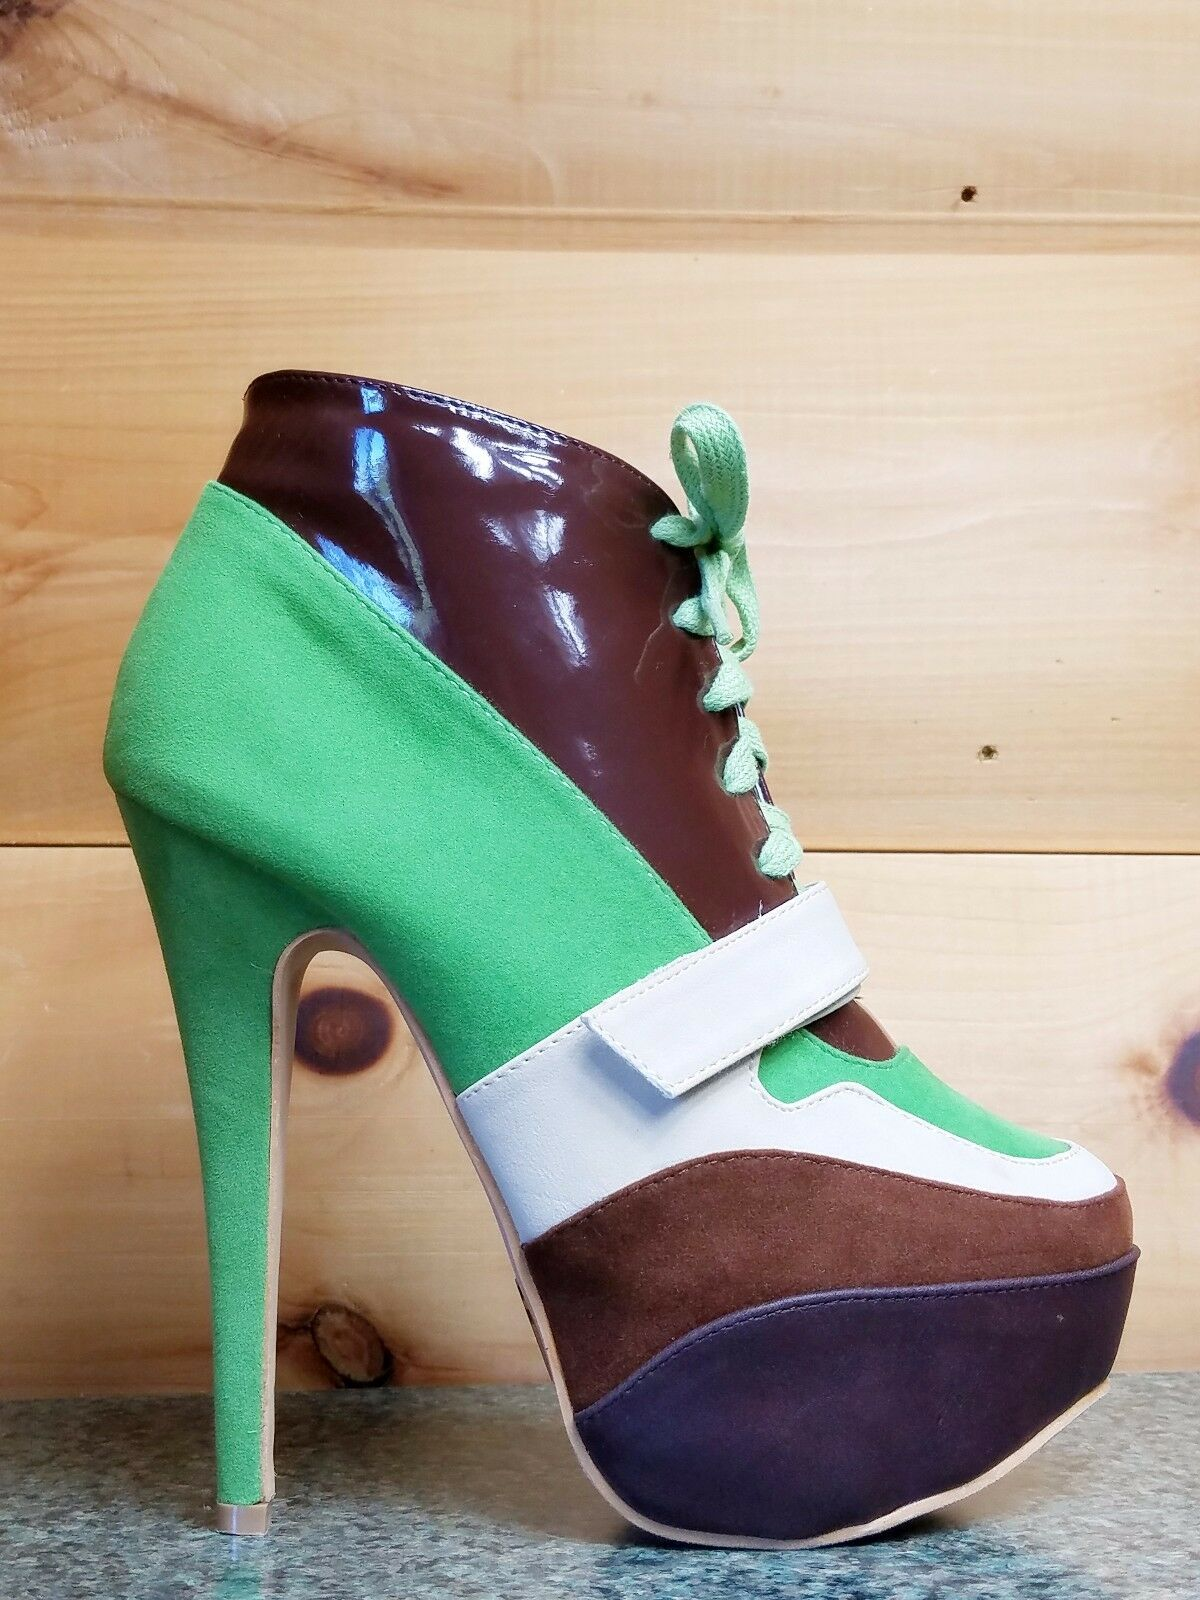 """Mona Mia 5"""" High Heel Sneaker Boot Lace Up Front Multi Color Sizes 6-11 Green"""